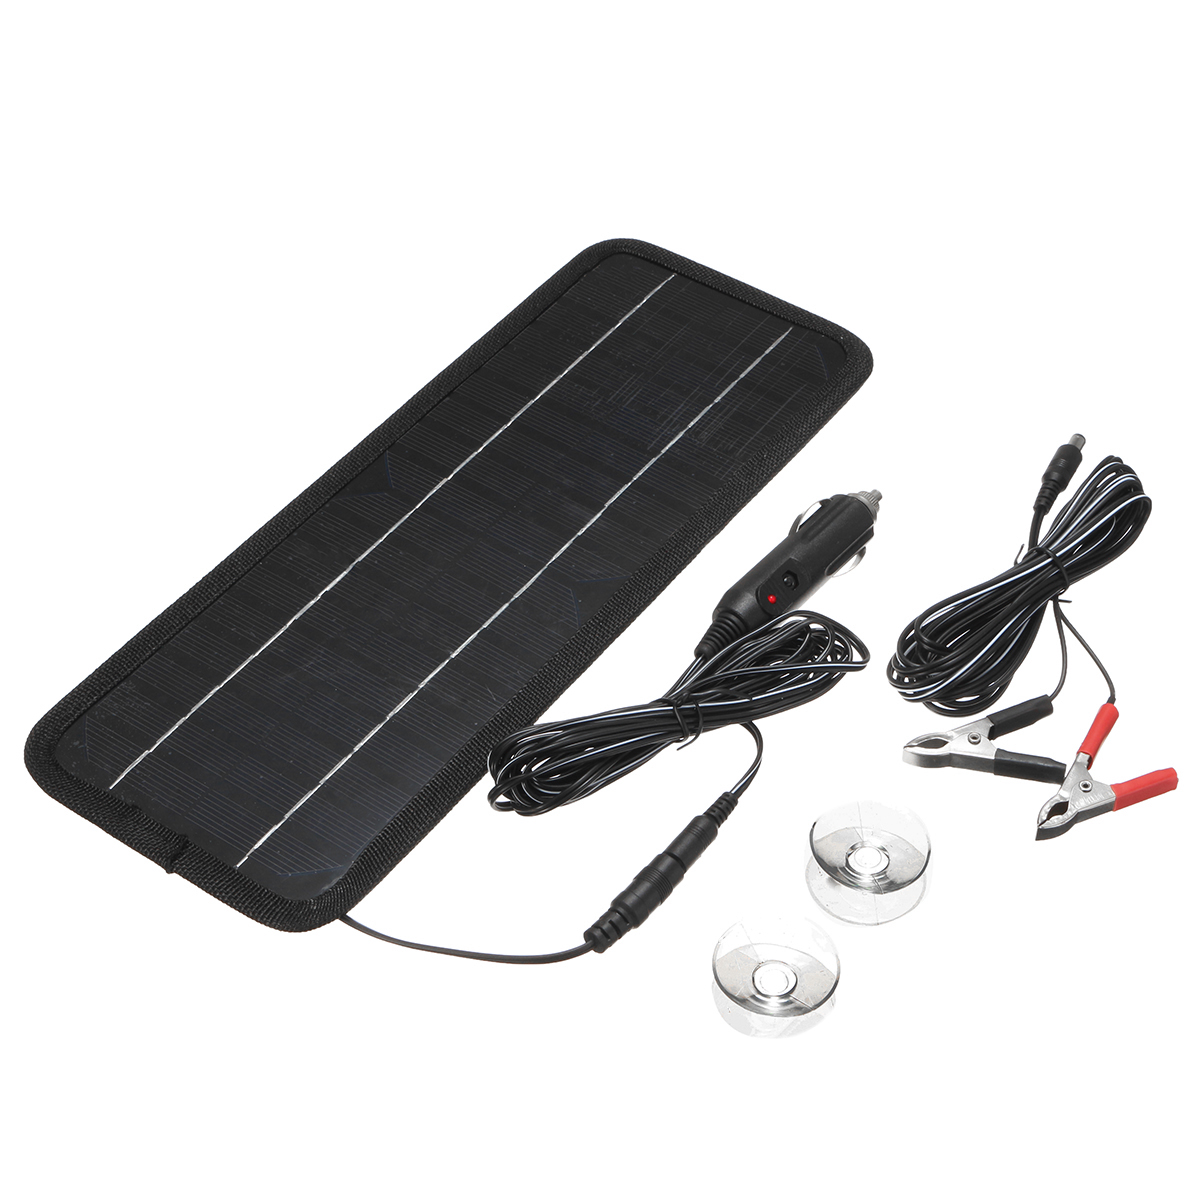 12V 4.5W Portable Monocrystalline Solar Panel For Car Automobile Boat Rechargeable Power Battery